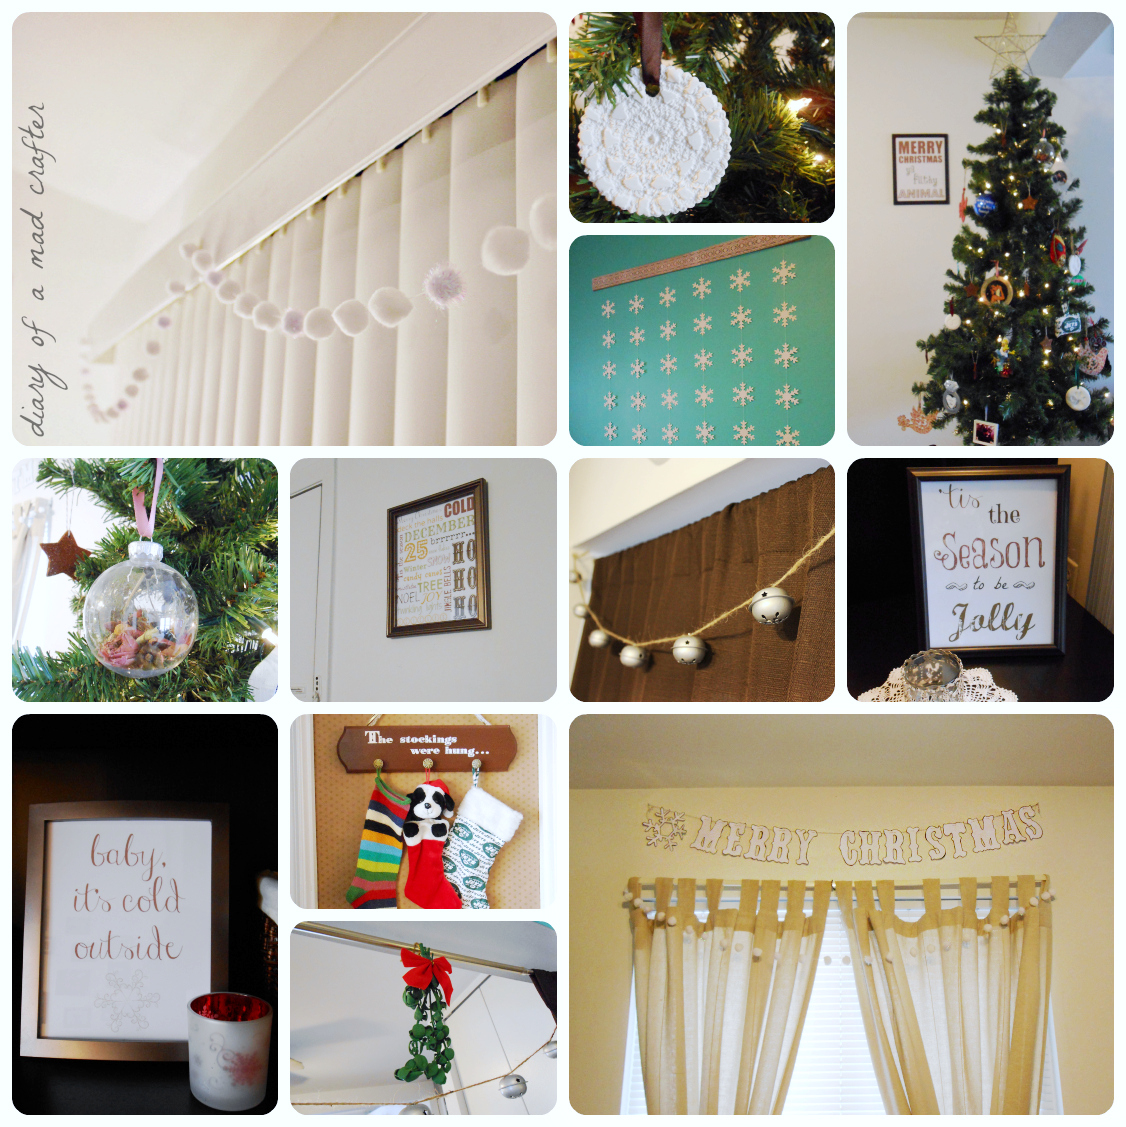 Christmas Decorations 2013: DIY Christmas Decorations